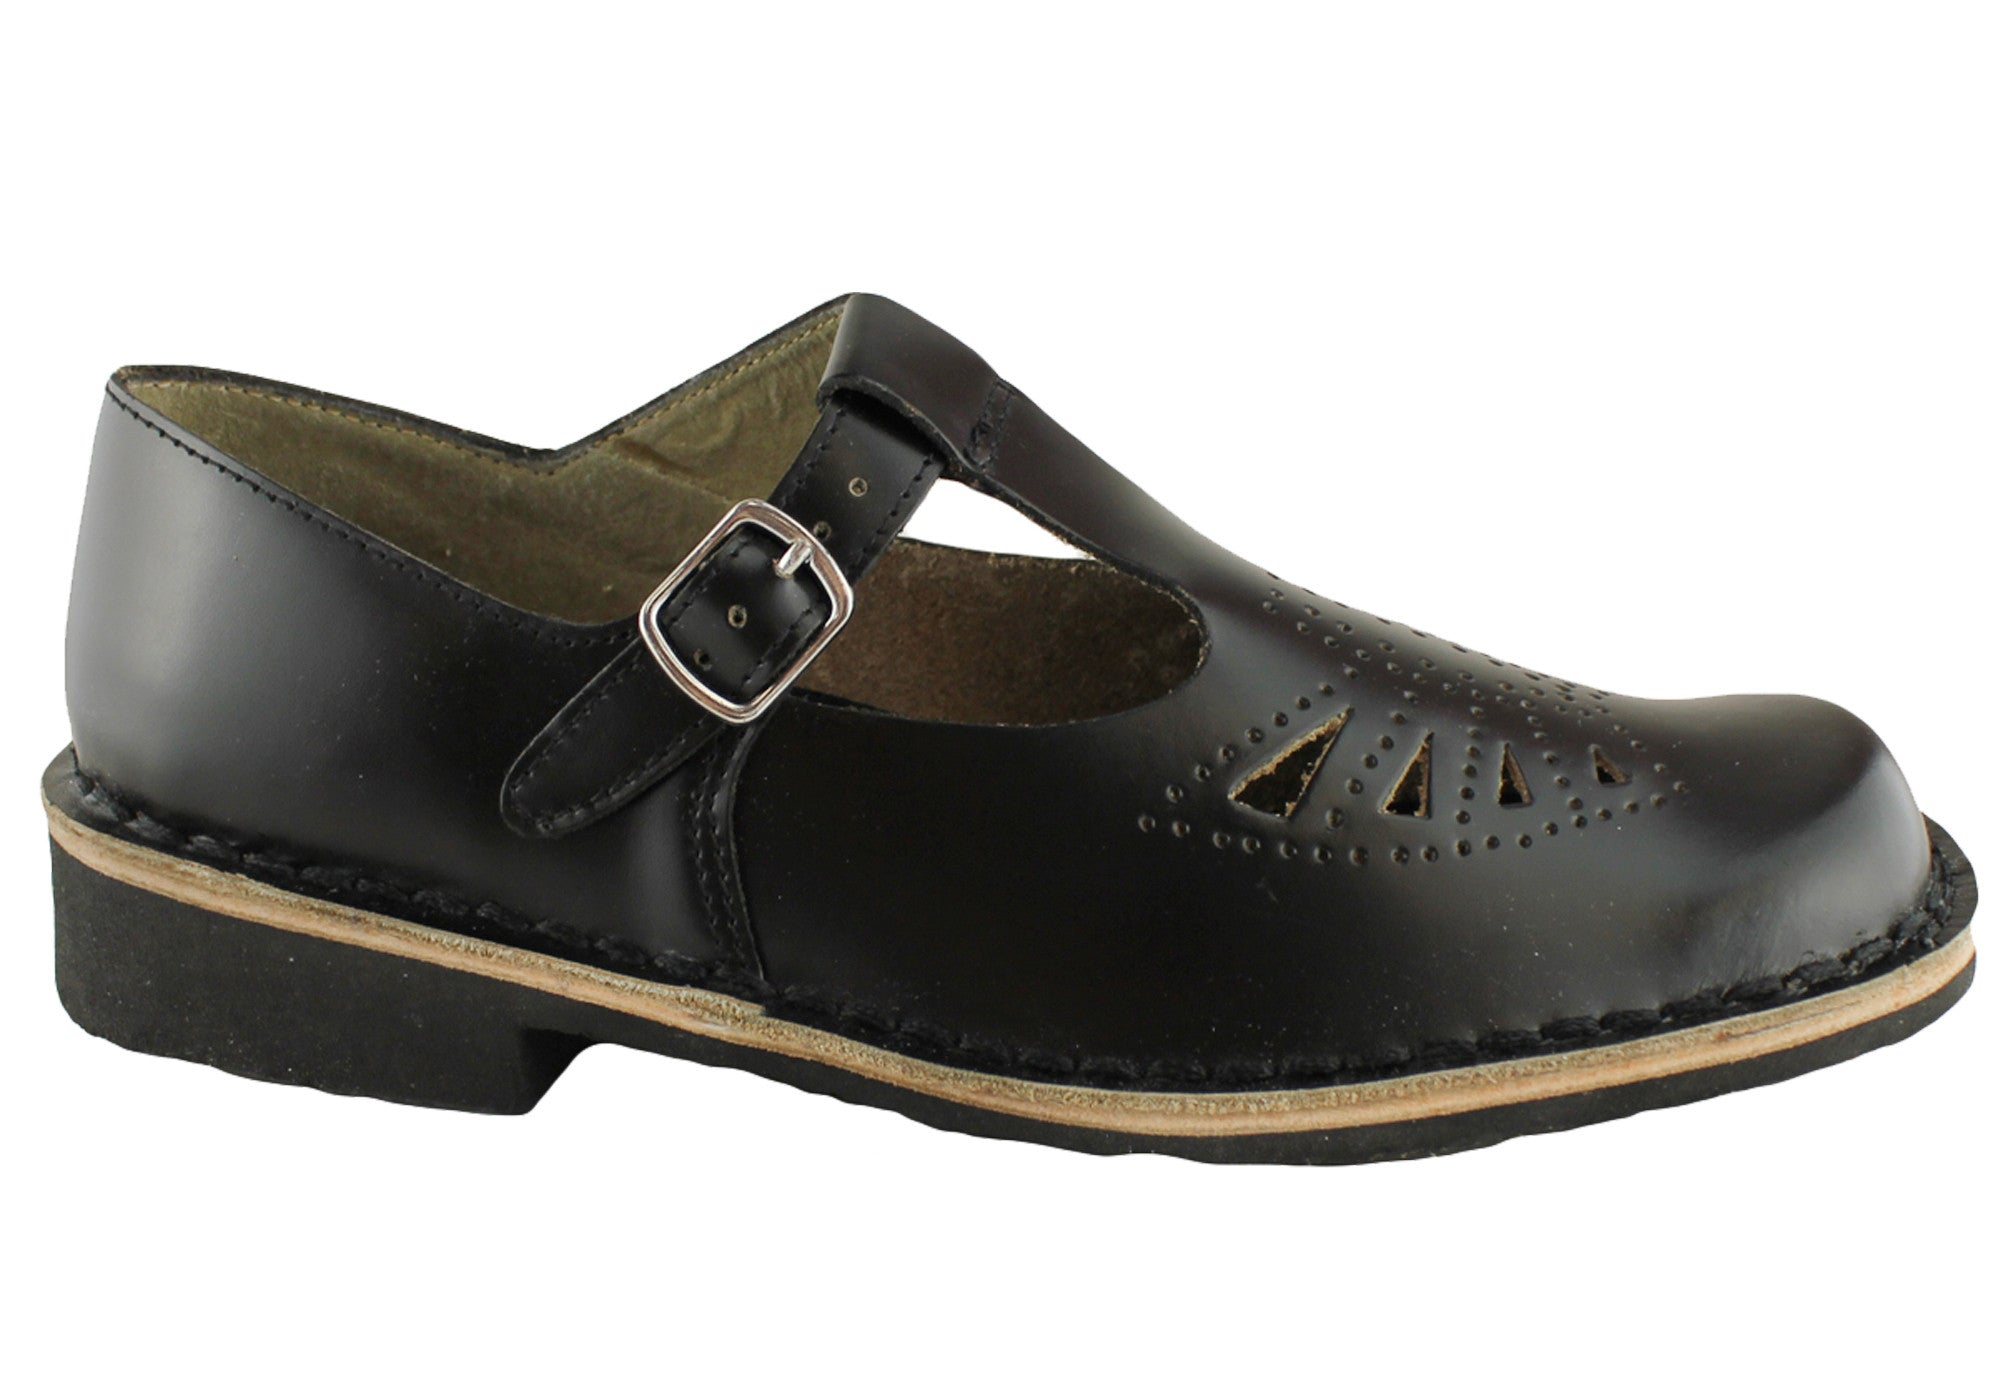 Black T Bar Svhool Shoes Brown Sole